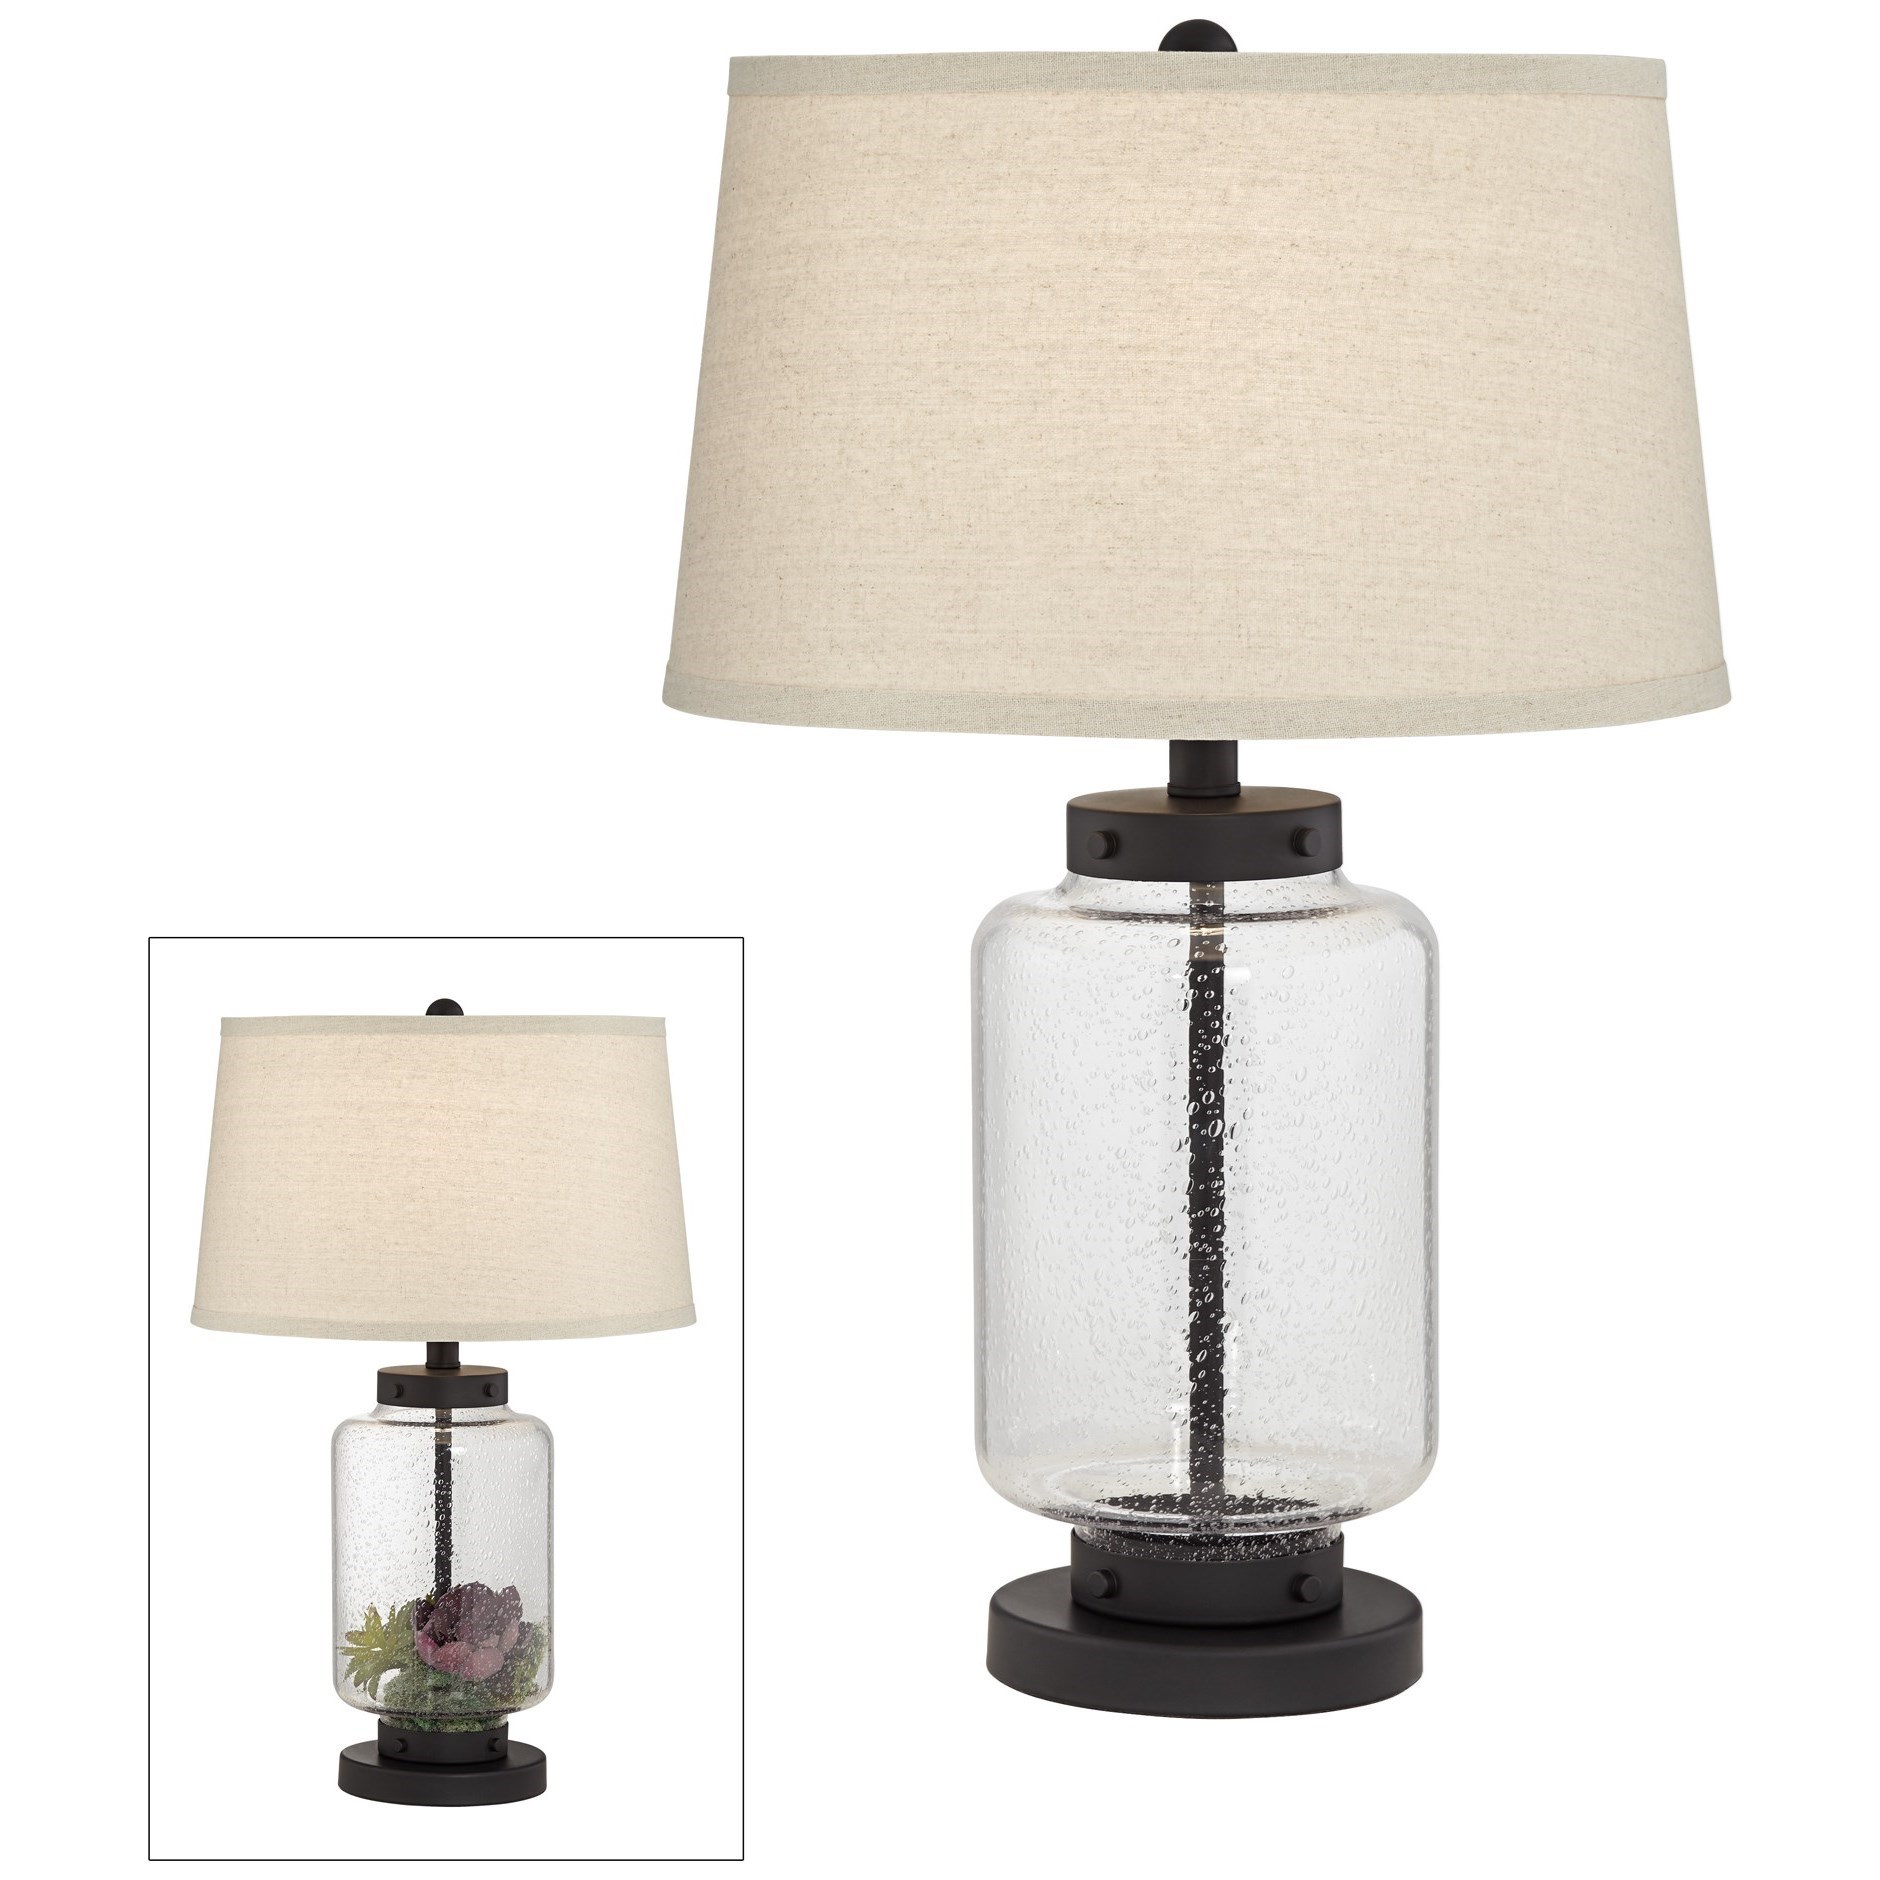 Image of: Pacific Coast Lighting Table Lamps Kathy Ireland Table Lamp With Fillable Base Wayside Furniture Table Lamps